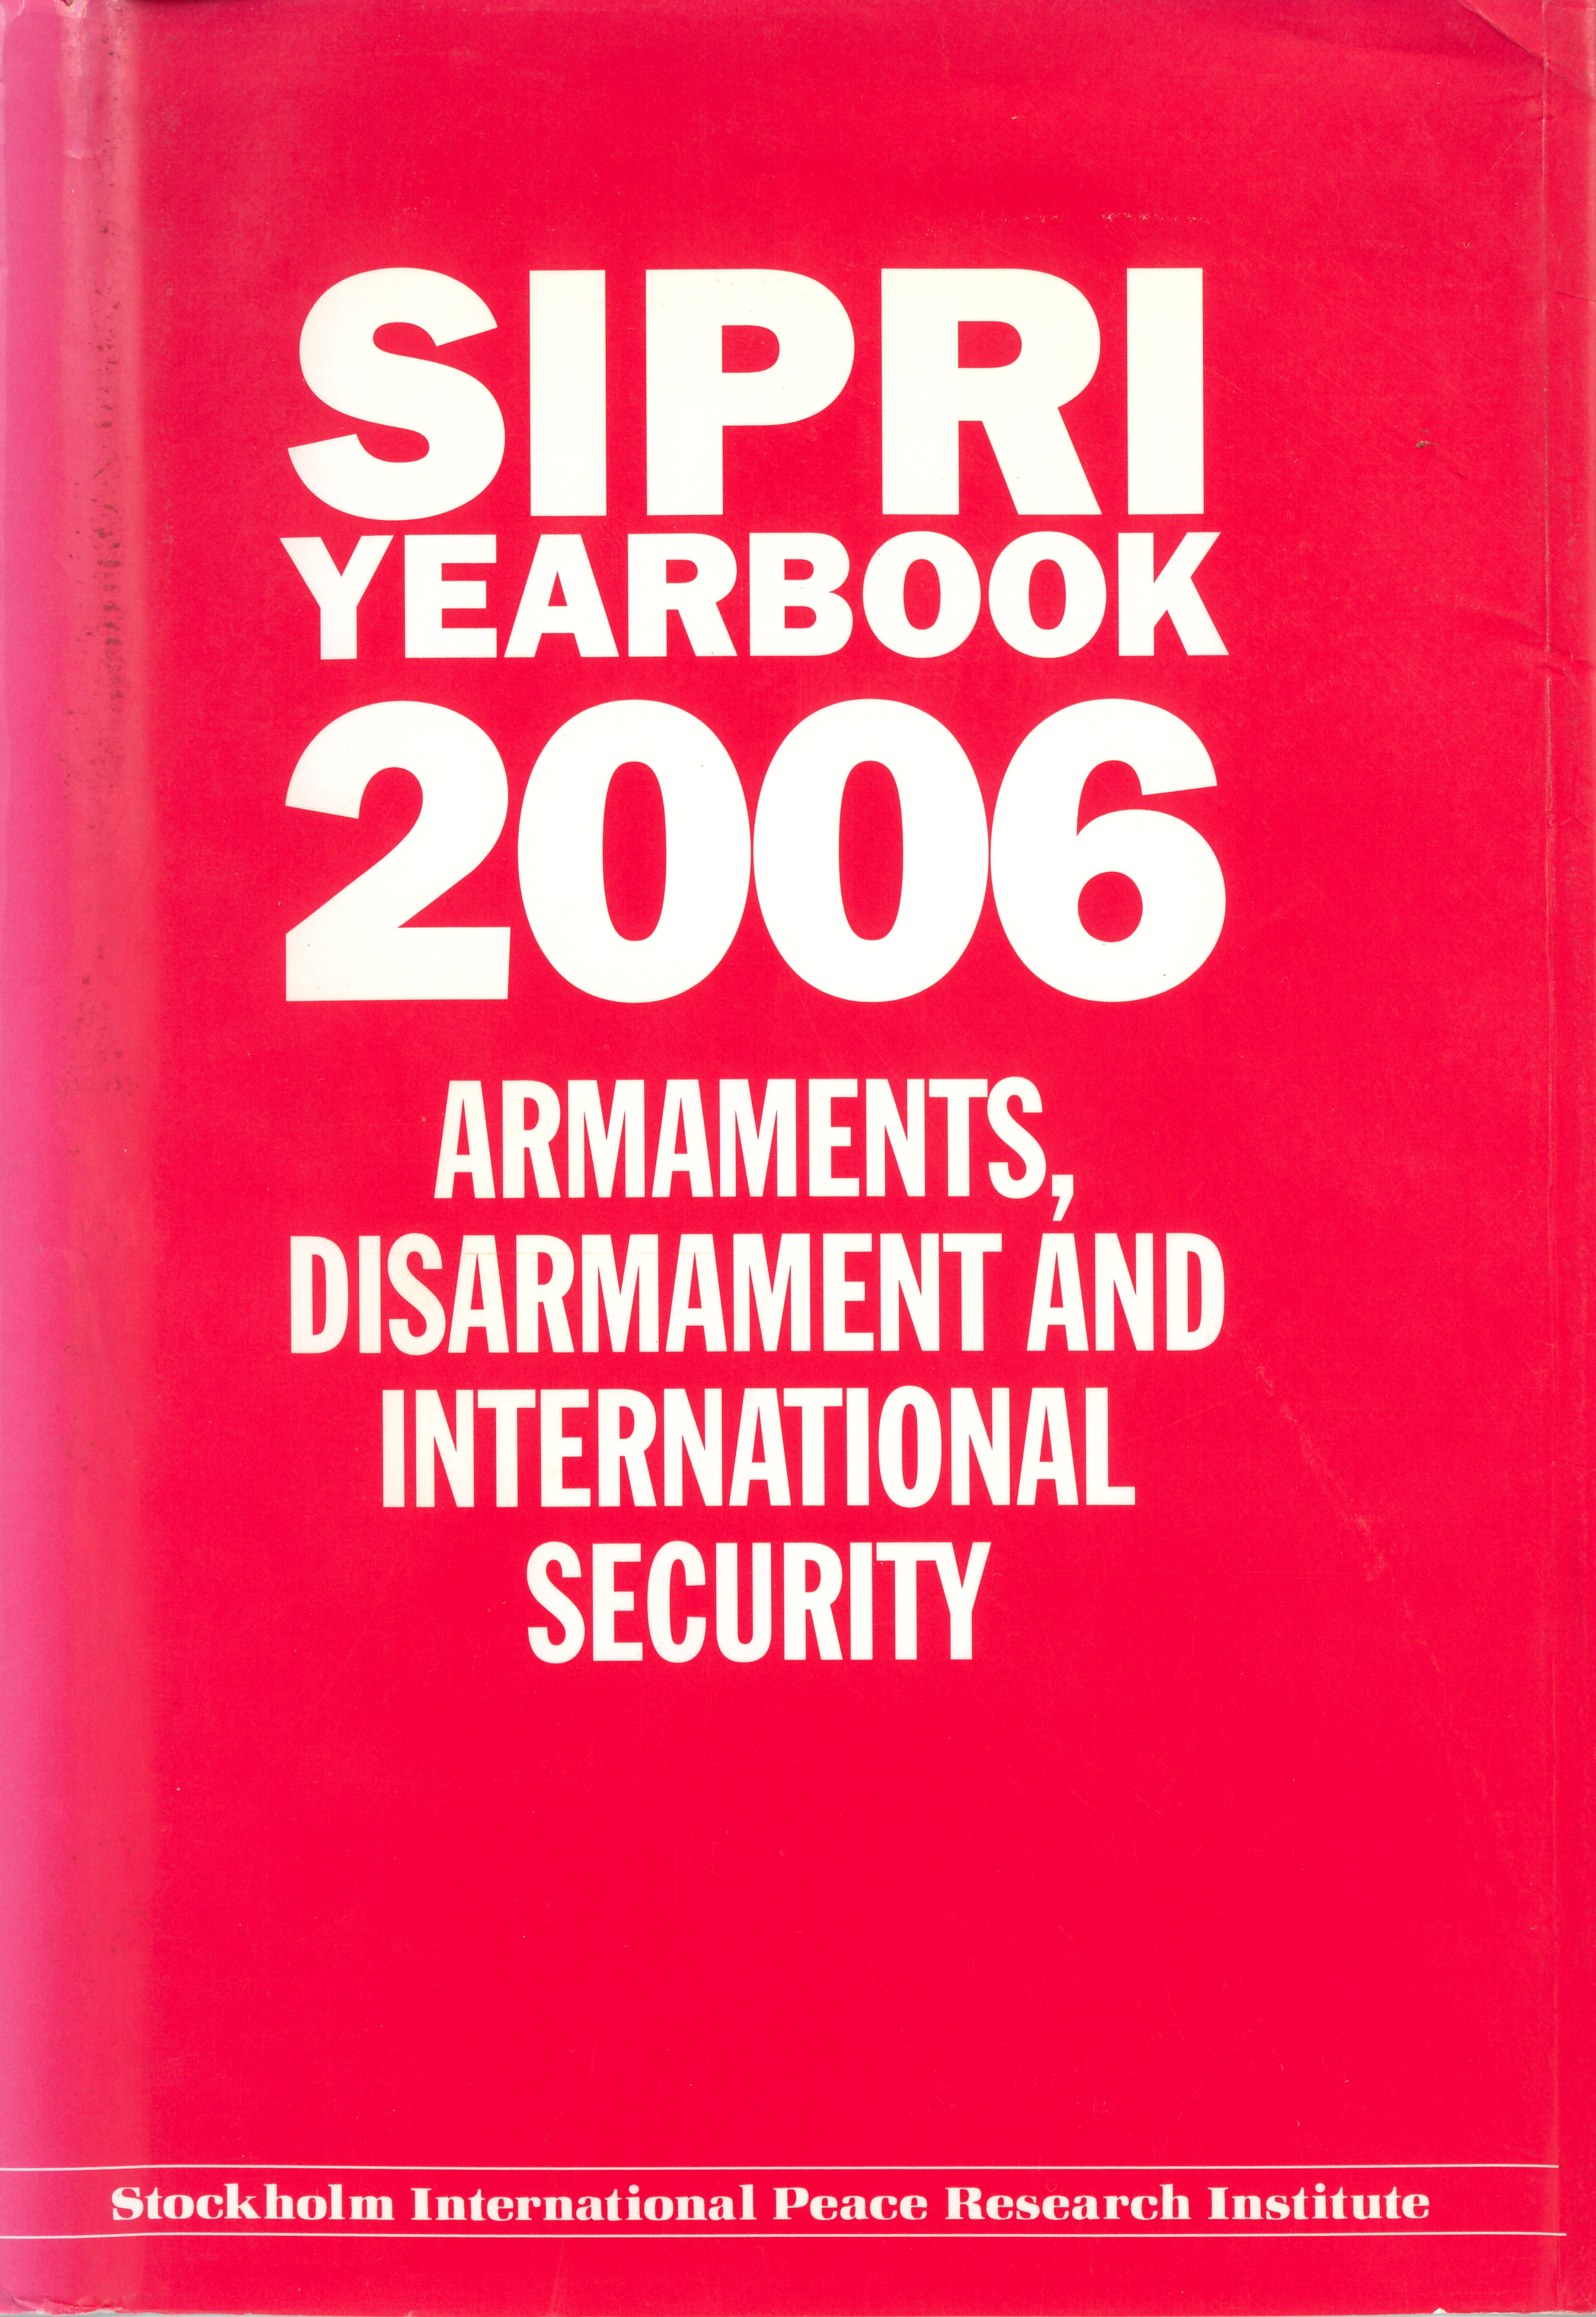 SIPRI yearbook 2006 cover